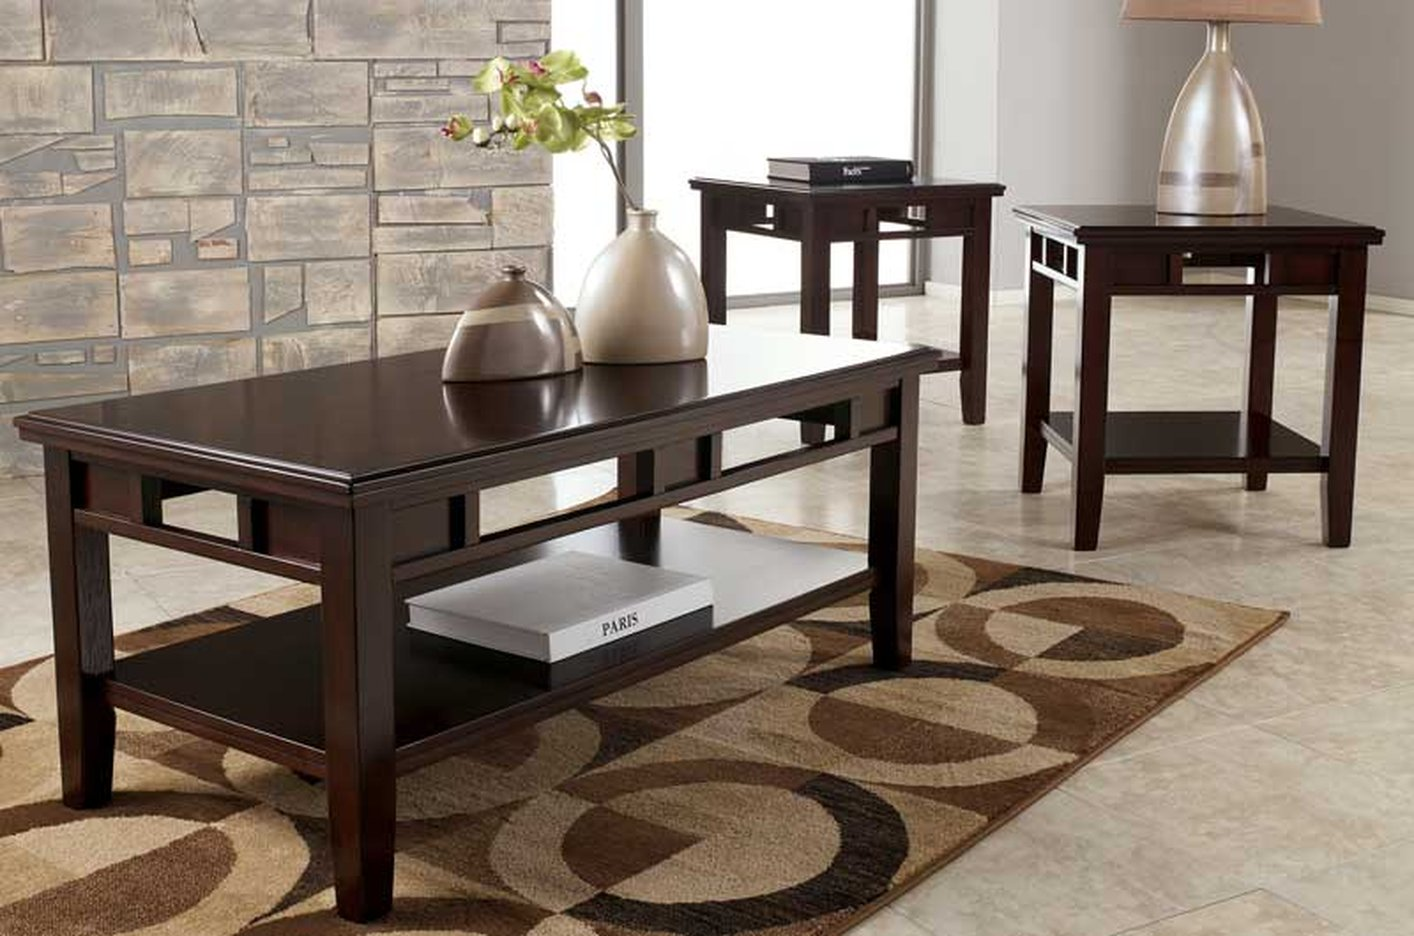 living room impressive big lots end tables design for furniture sets rustic table baton rouge huntsville erie futon tall kitchen open labor day pallet wood bar leon power lift